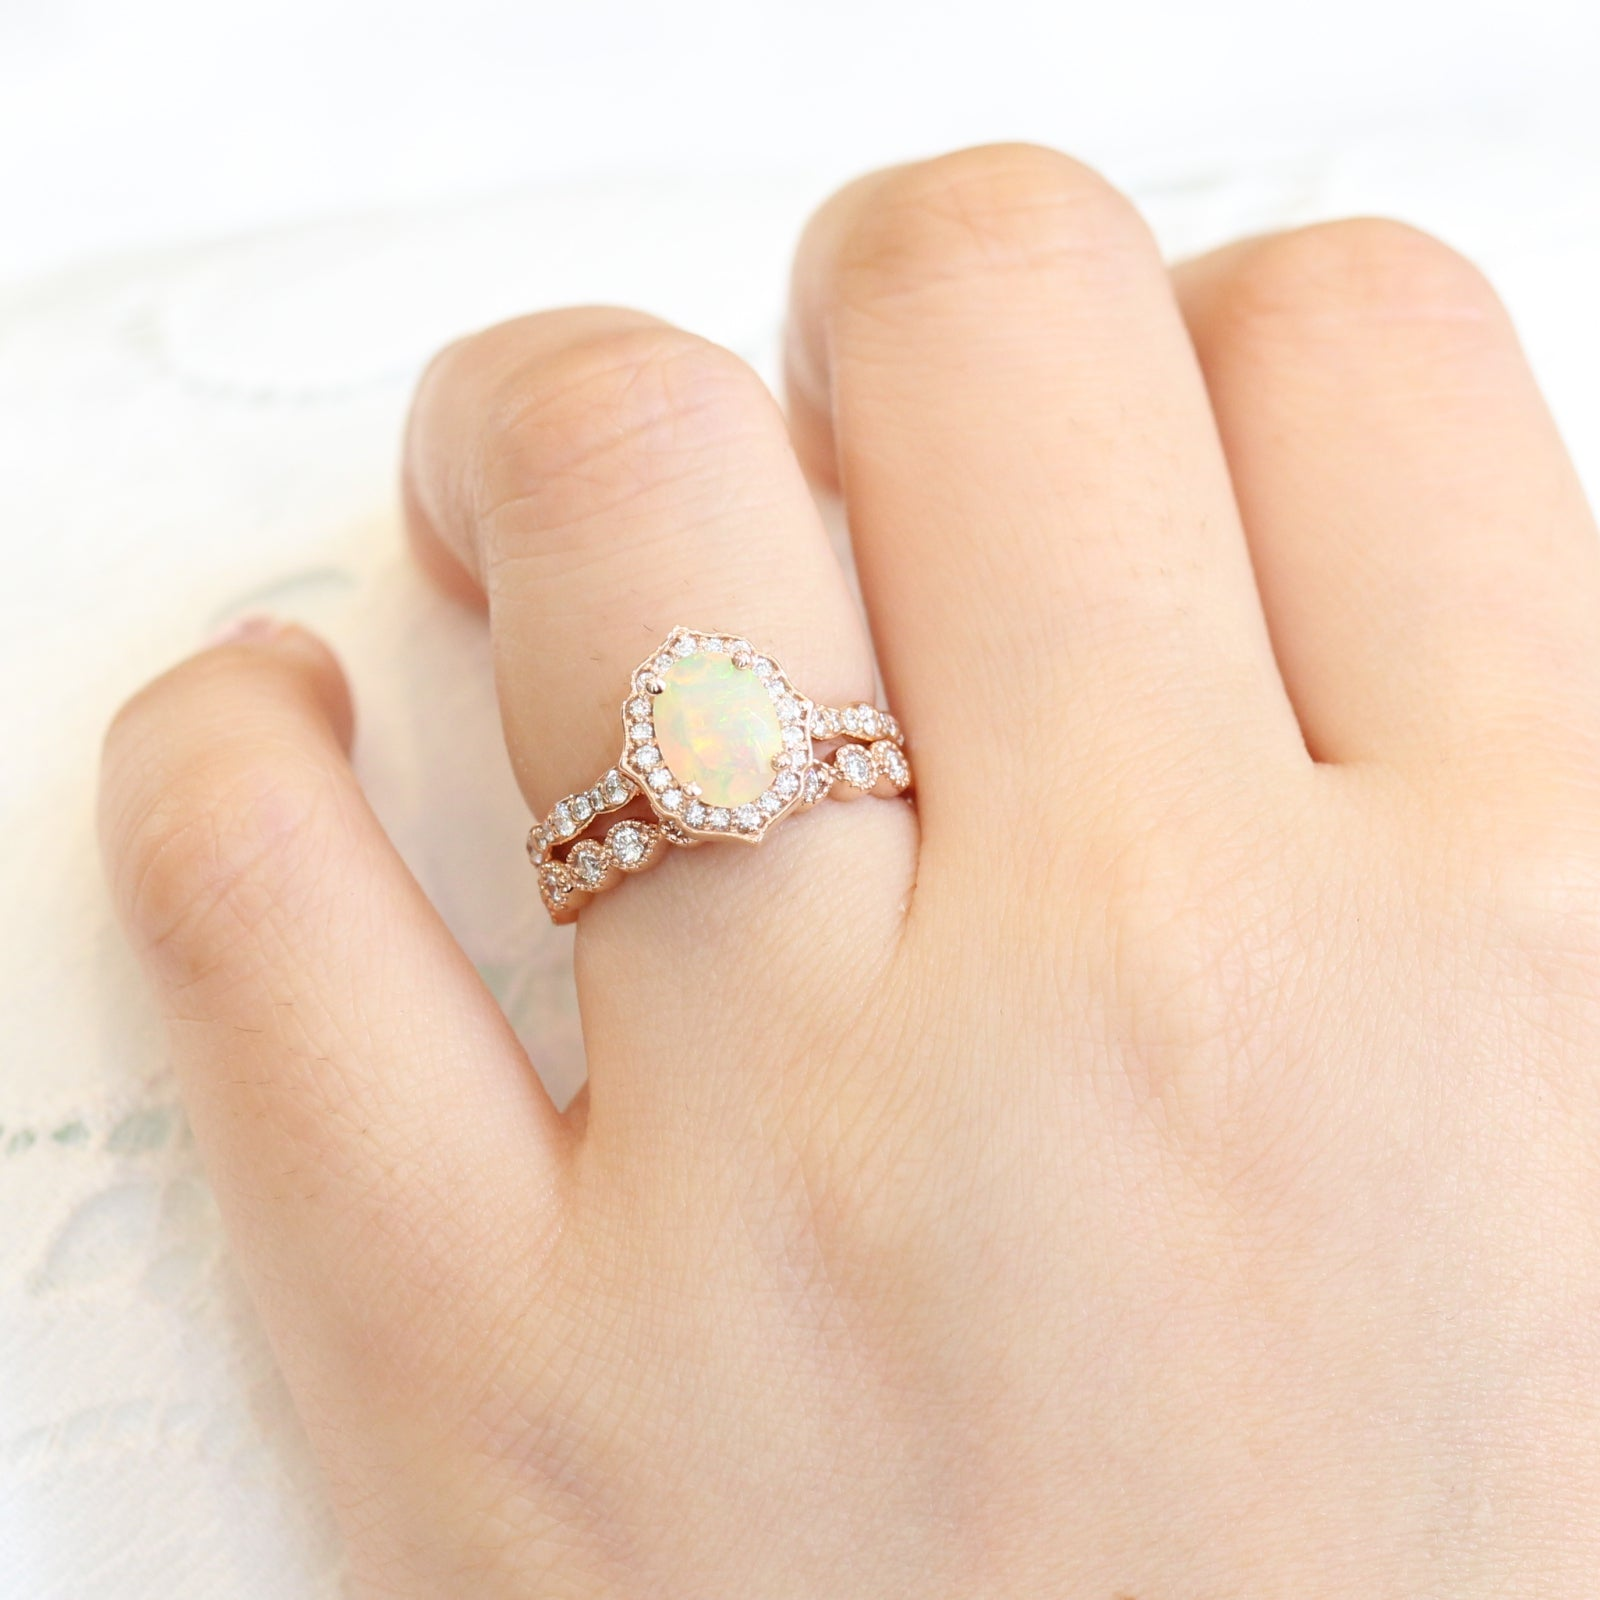 Rny Jewelry Fashion Flower White Opal Rings Fashion Vintage Jewelry For Women Wedding Rings